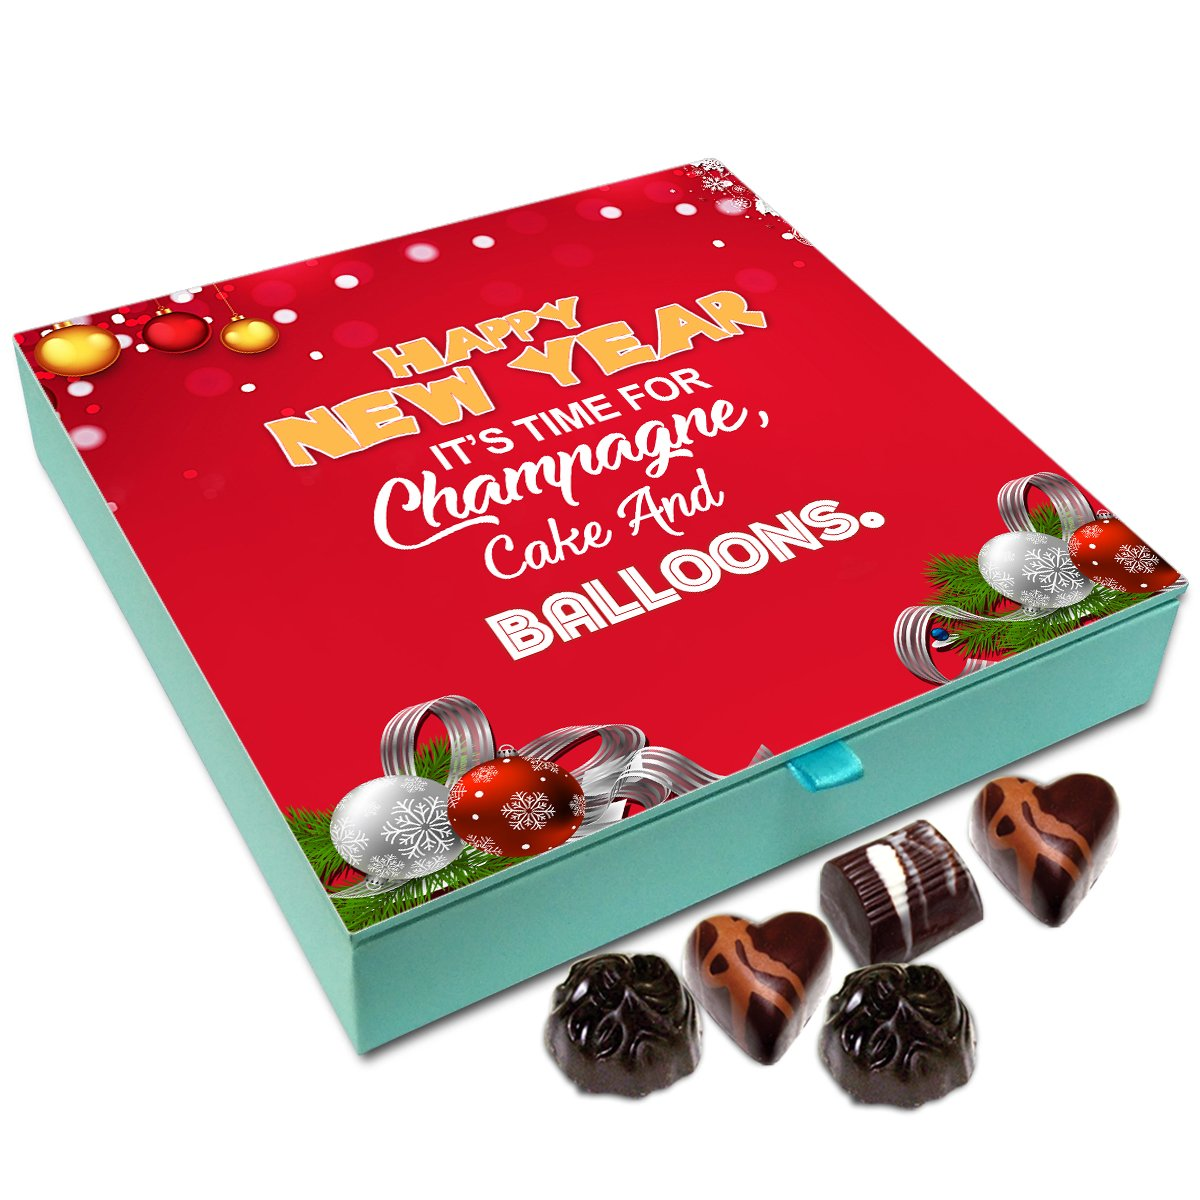 Chocholik New Year Chocolate Box – New Year is The Time for Champagne Cake and Balloons Chocolate Box – 9pc